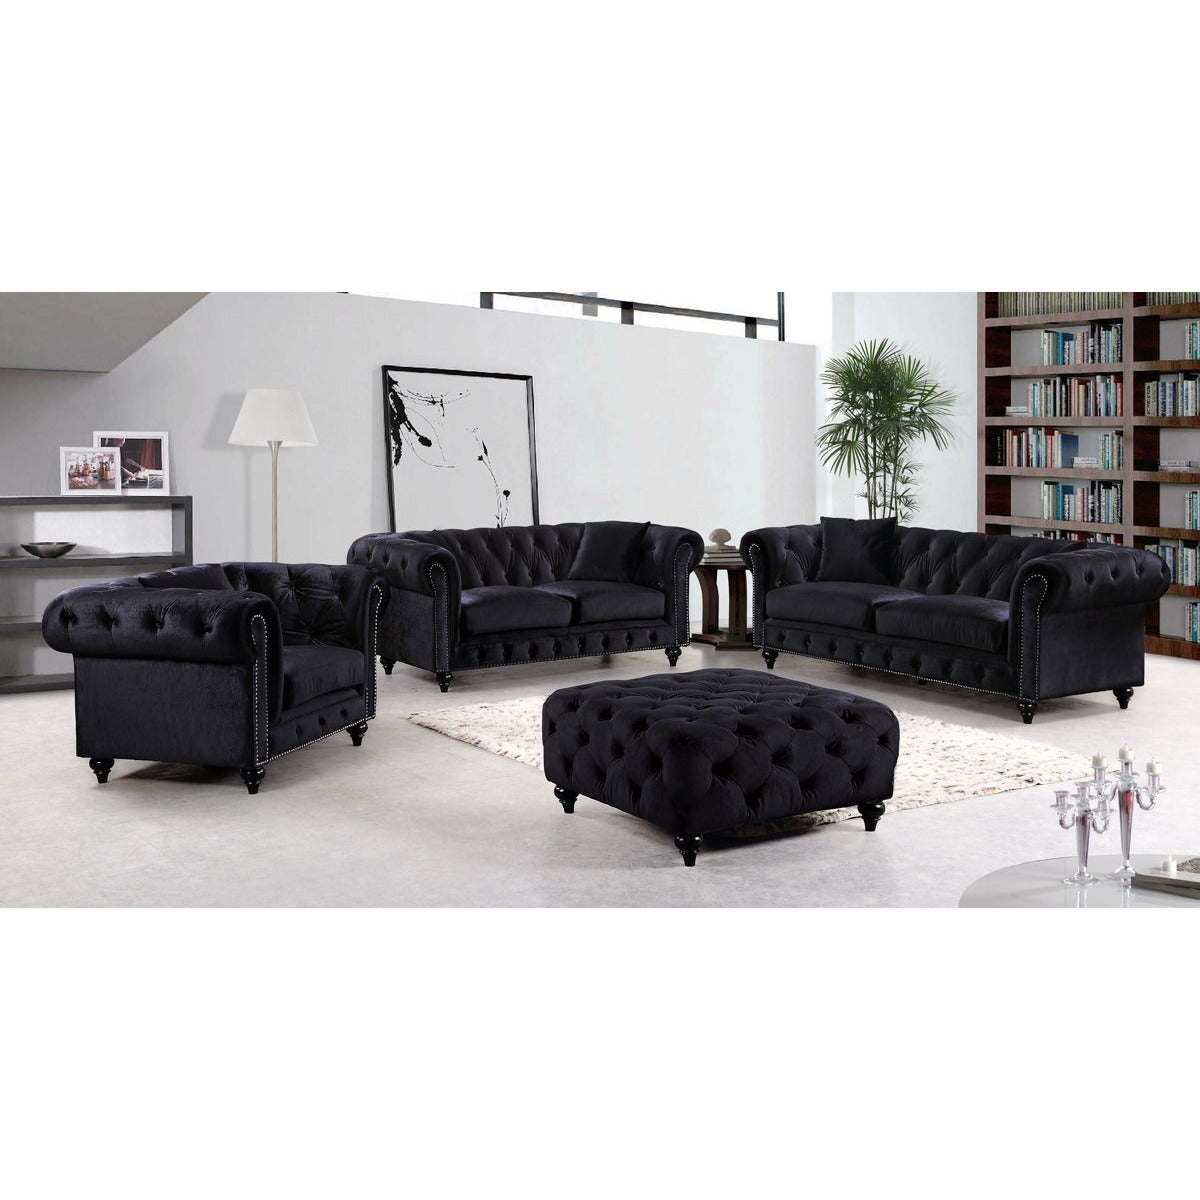 Meridian Furniture Chesterfield Black Velvet Sofa – Minimal & Modern